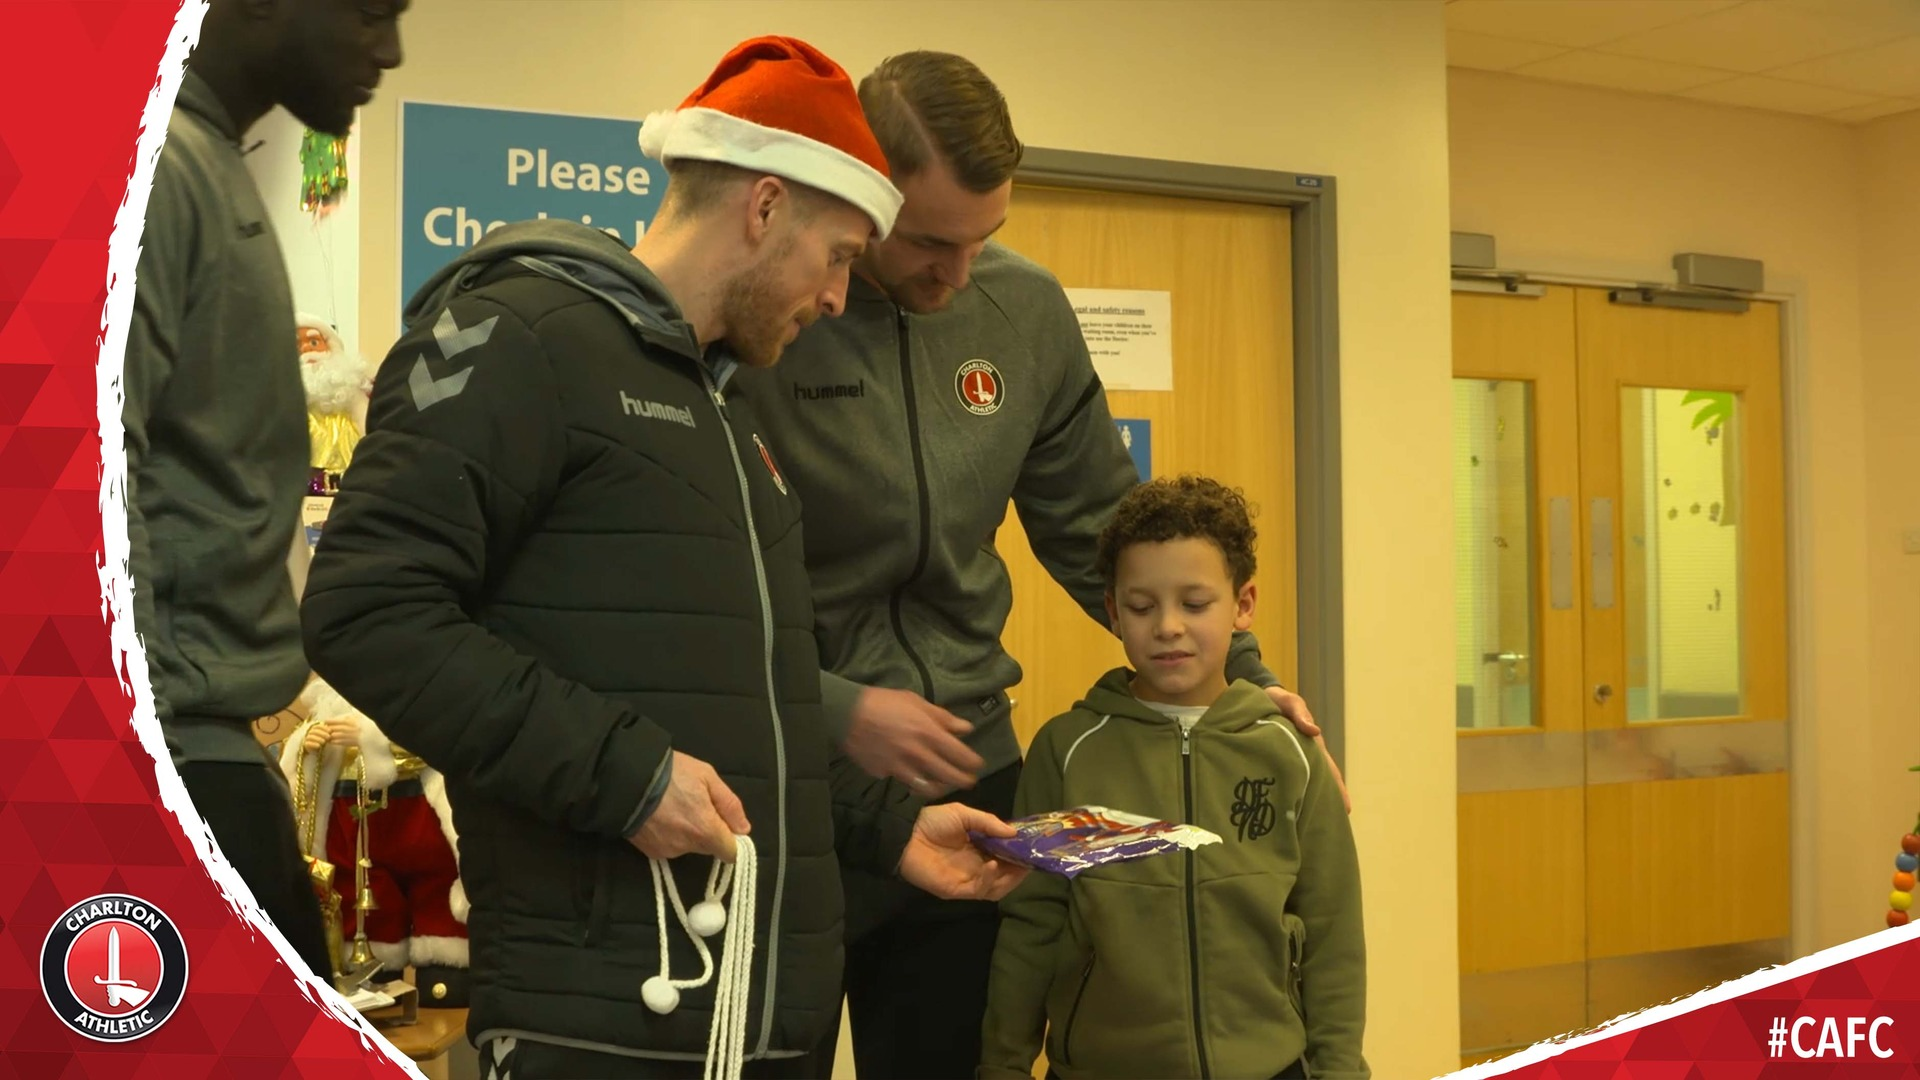 Charlton make their Christmas visit to Queen Elizabeth Hospital (December 2018)